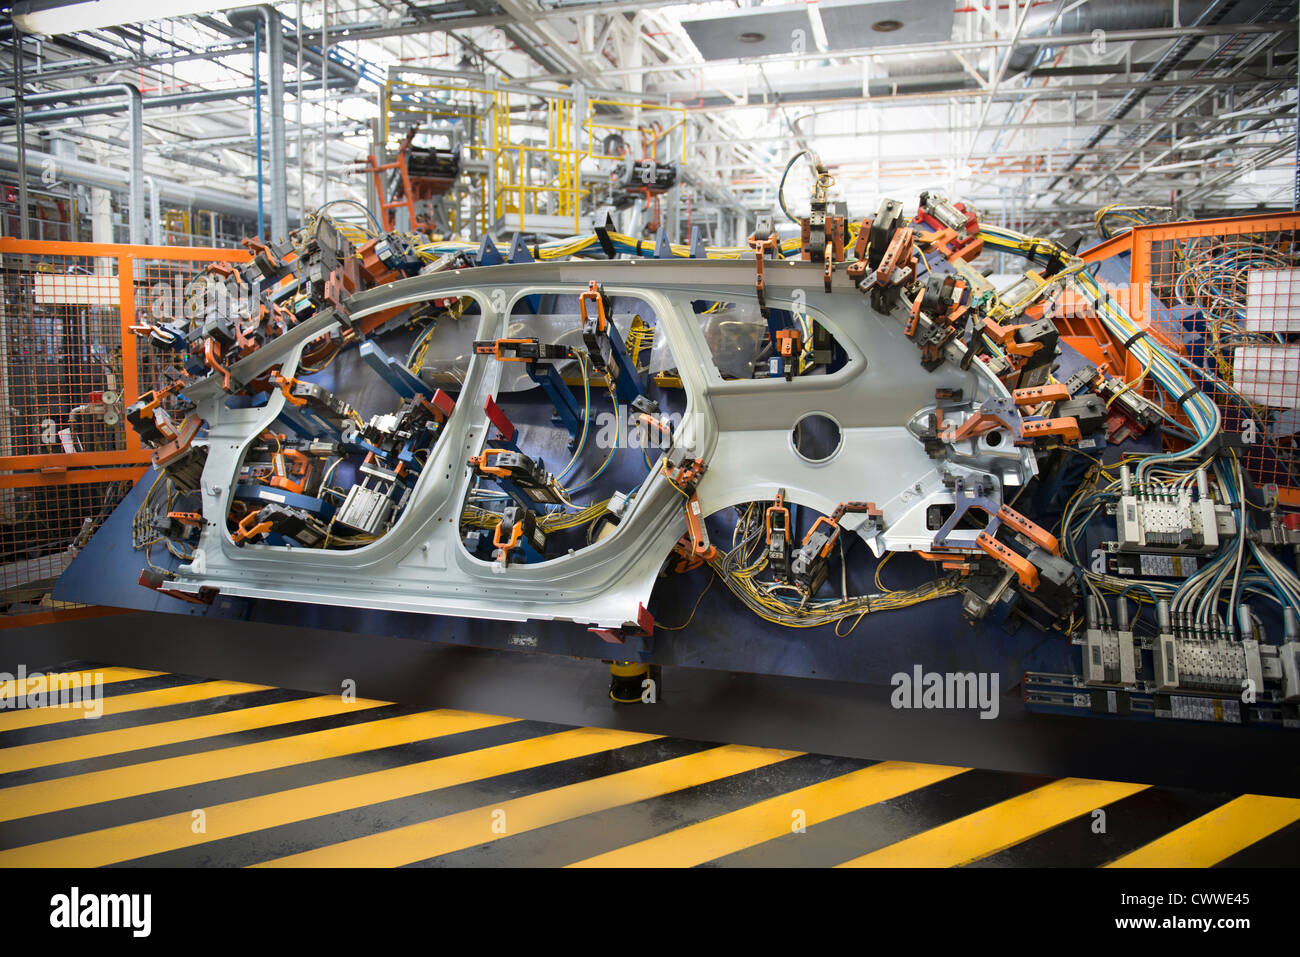 Car parts on welding jig in car factory - Stock Image